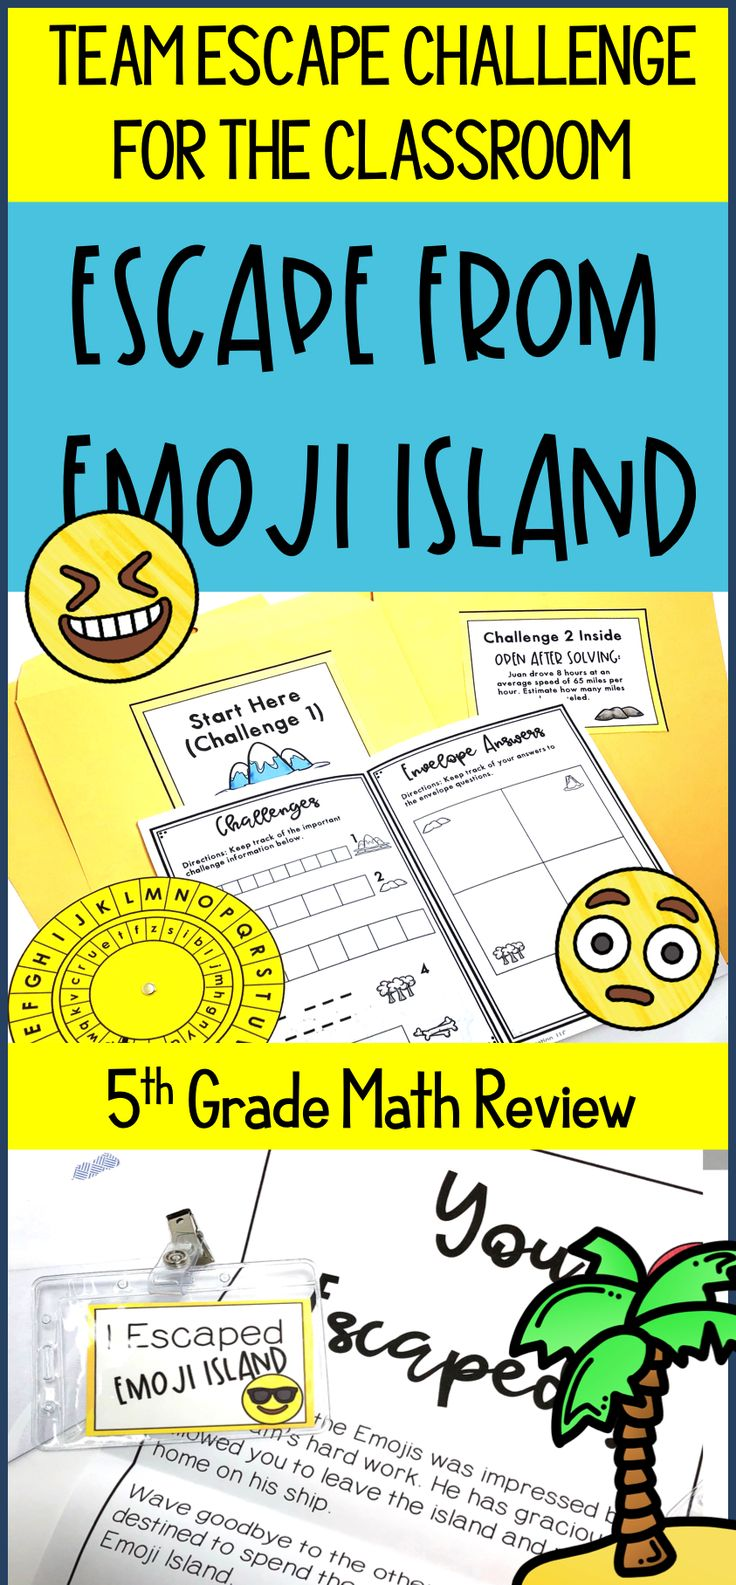 Don't do boring test prep anymore! Let your students escape from Emoji Island using: Multiplication, Division, Fractions, Decimals, Geometry, Problem Solving. This classroom break out / escape classroom challenge is specifically for 5th grade math standards.